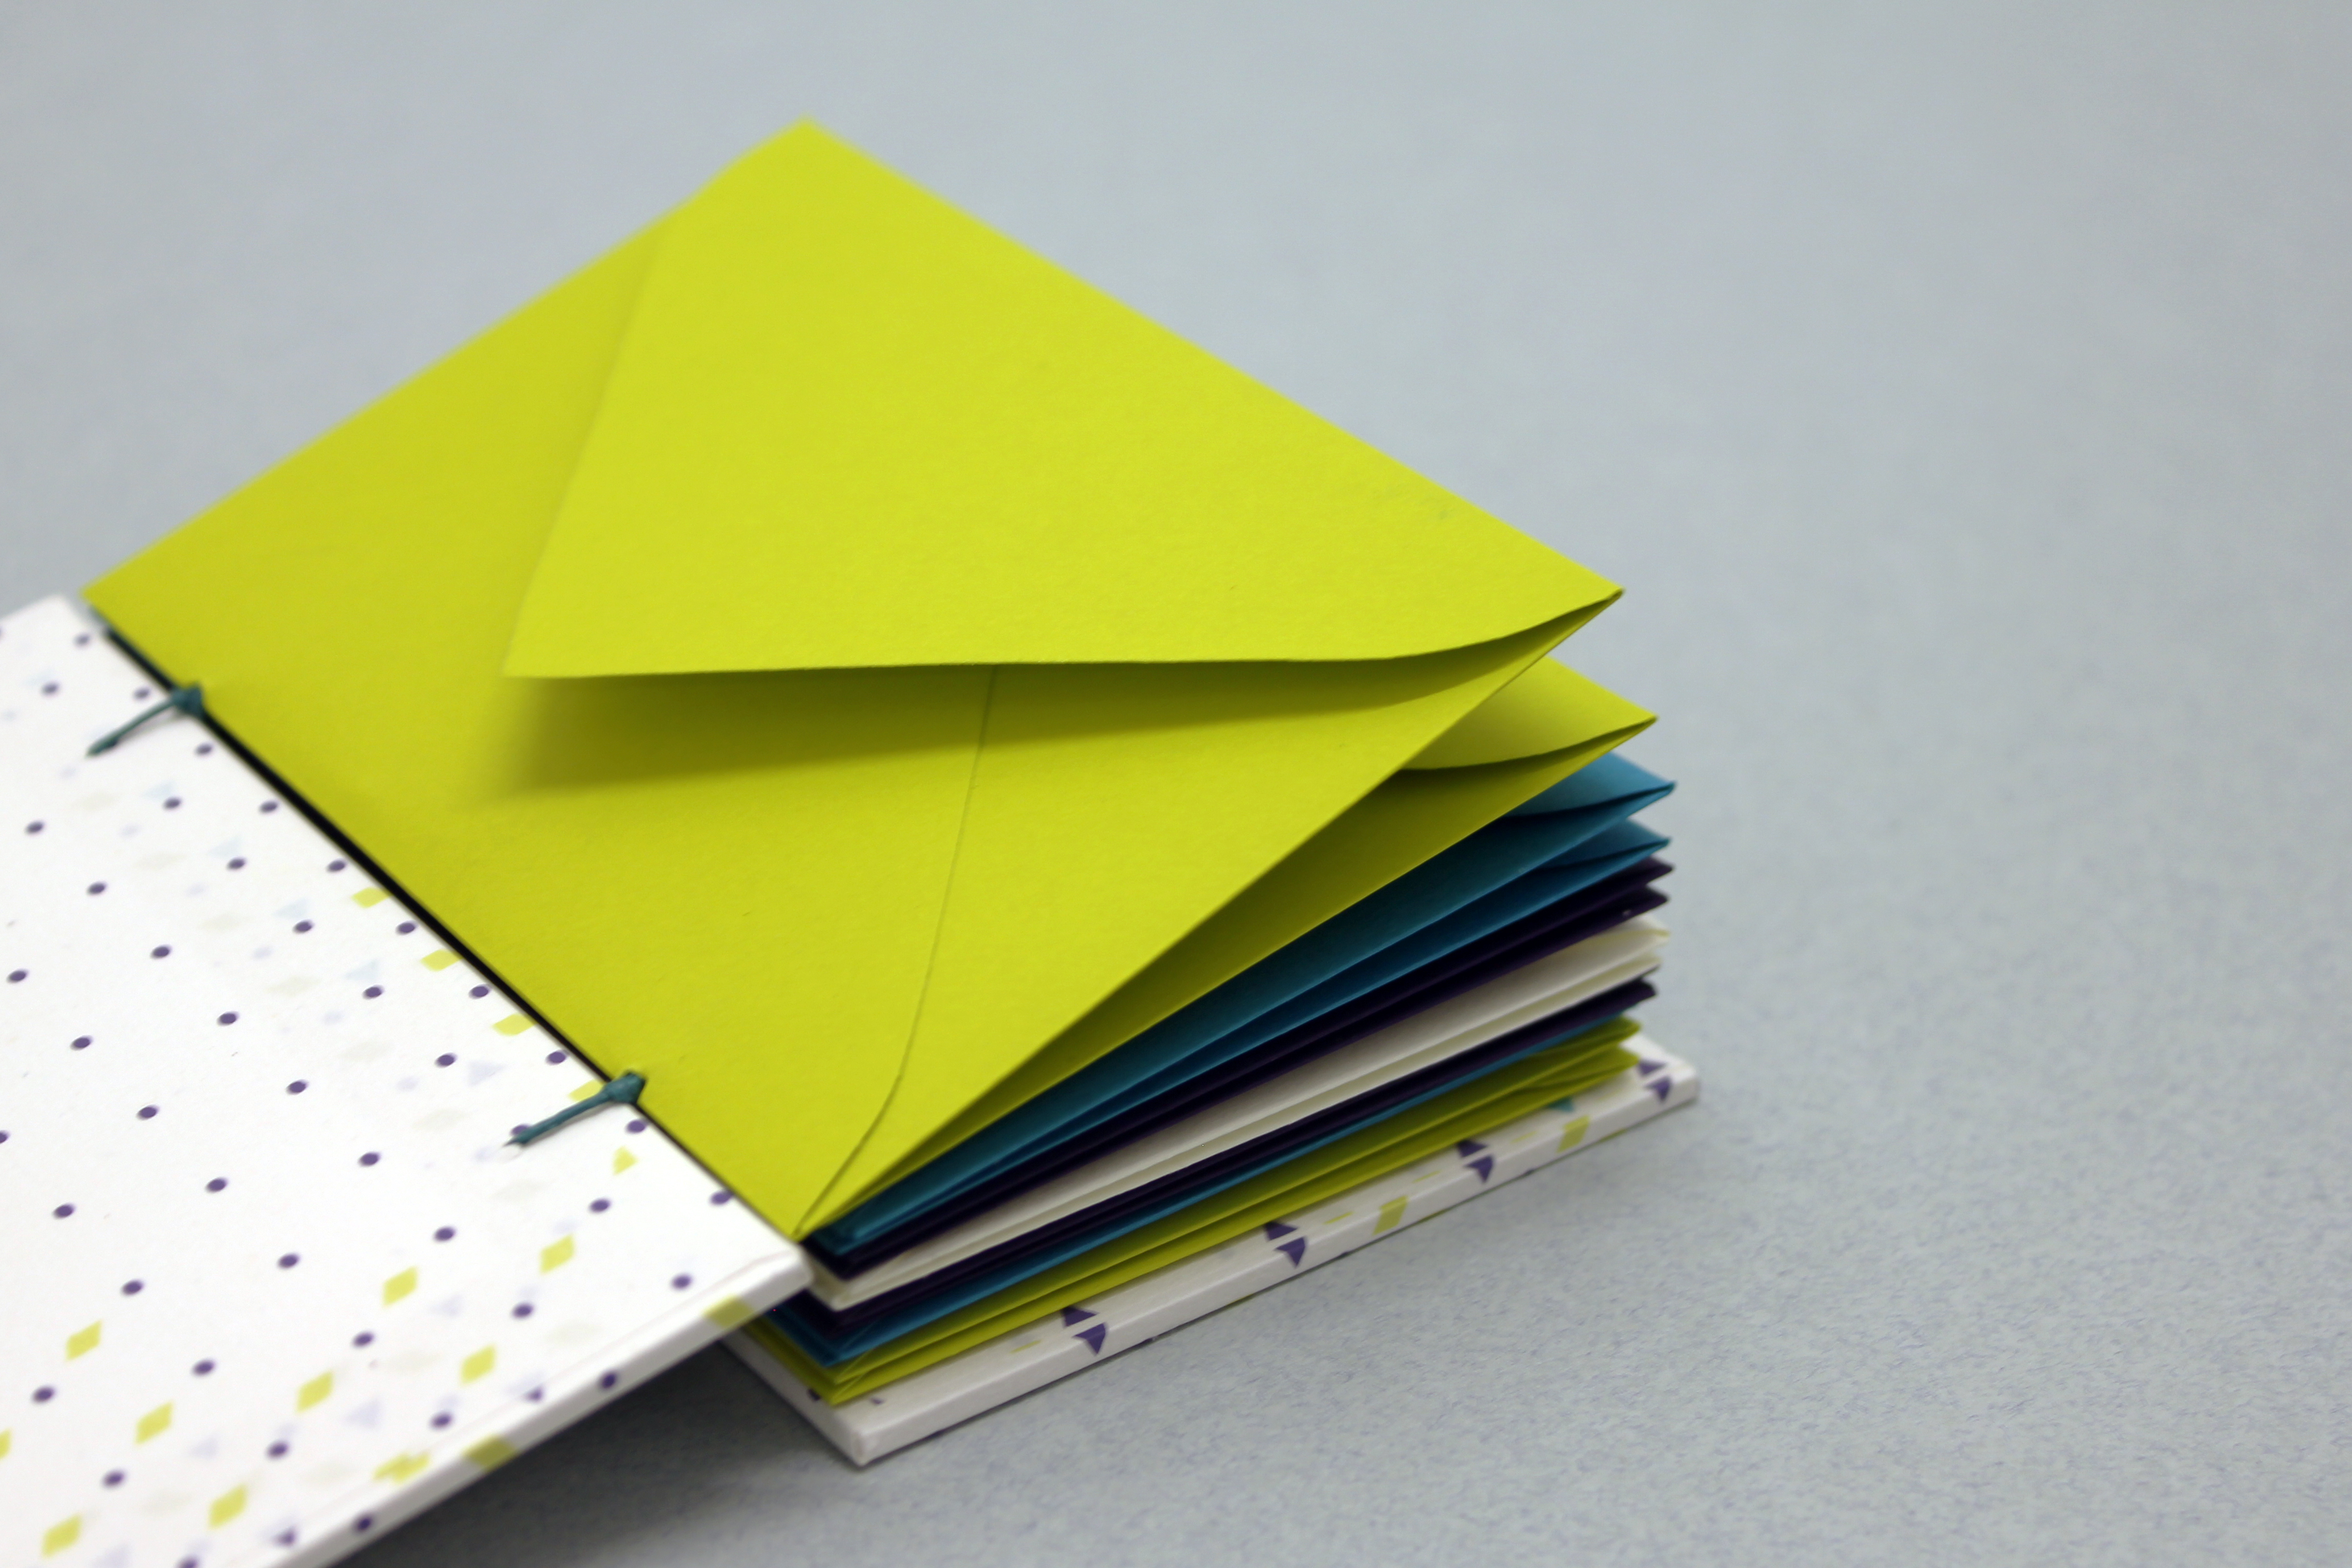 reliure, bookbinding, carnets, papeterie, livre-or-enveloppes, reliure-copte, livre-or-mariage, papeterie-art, notebook